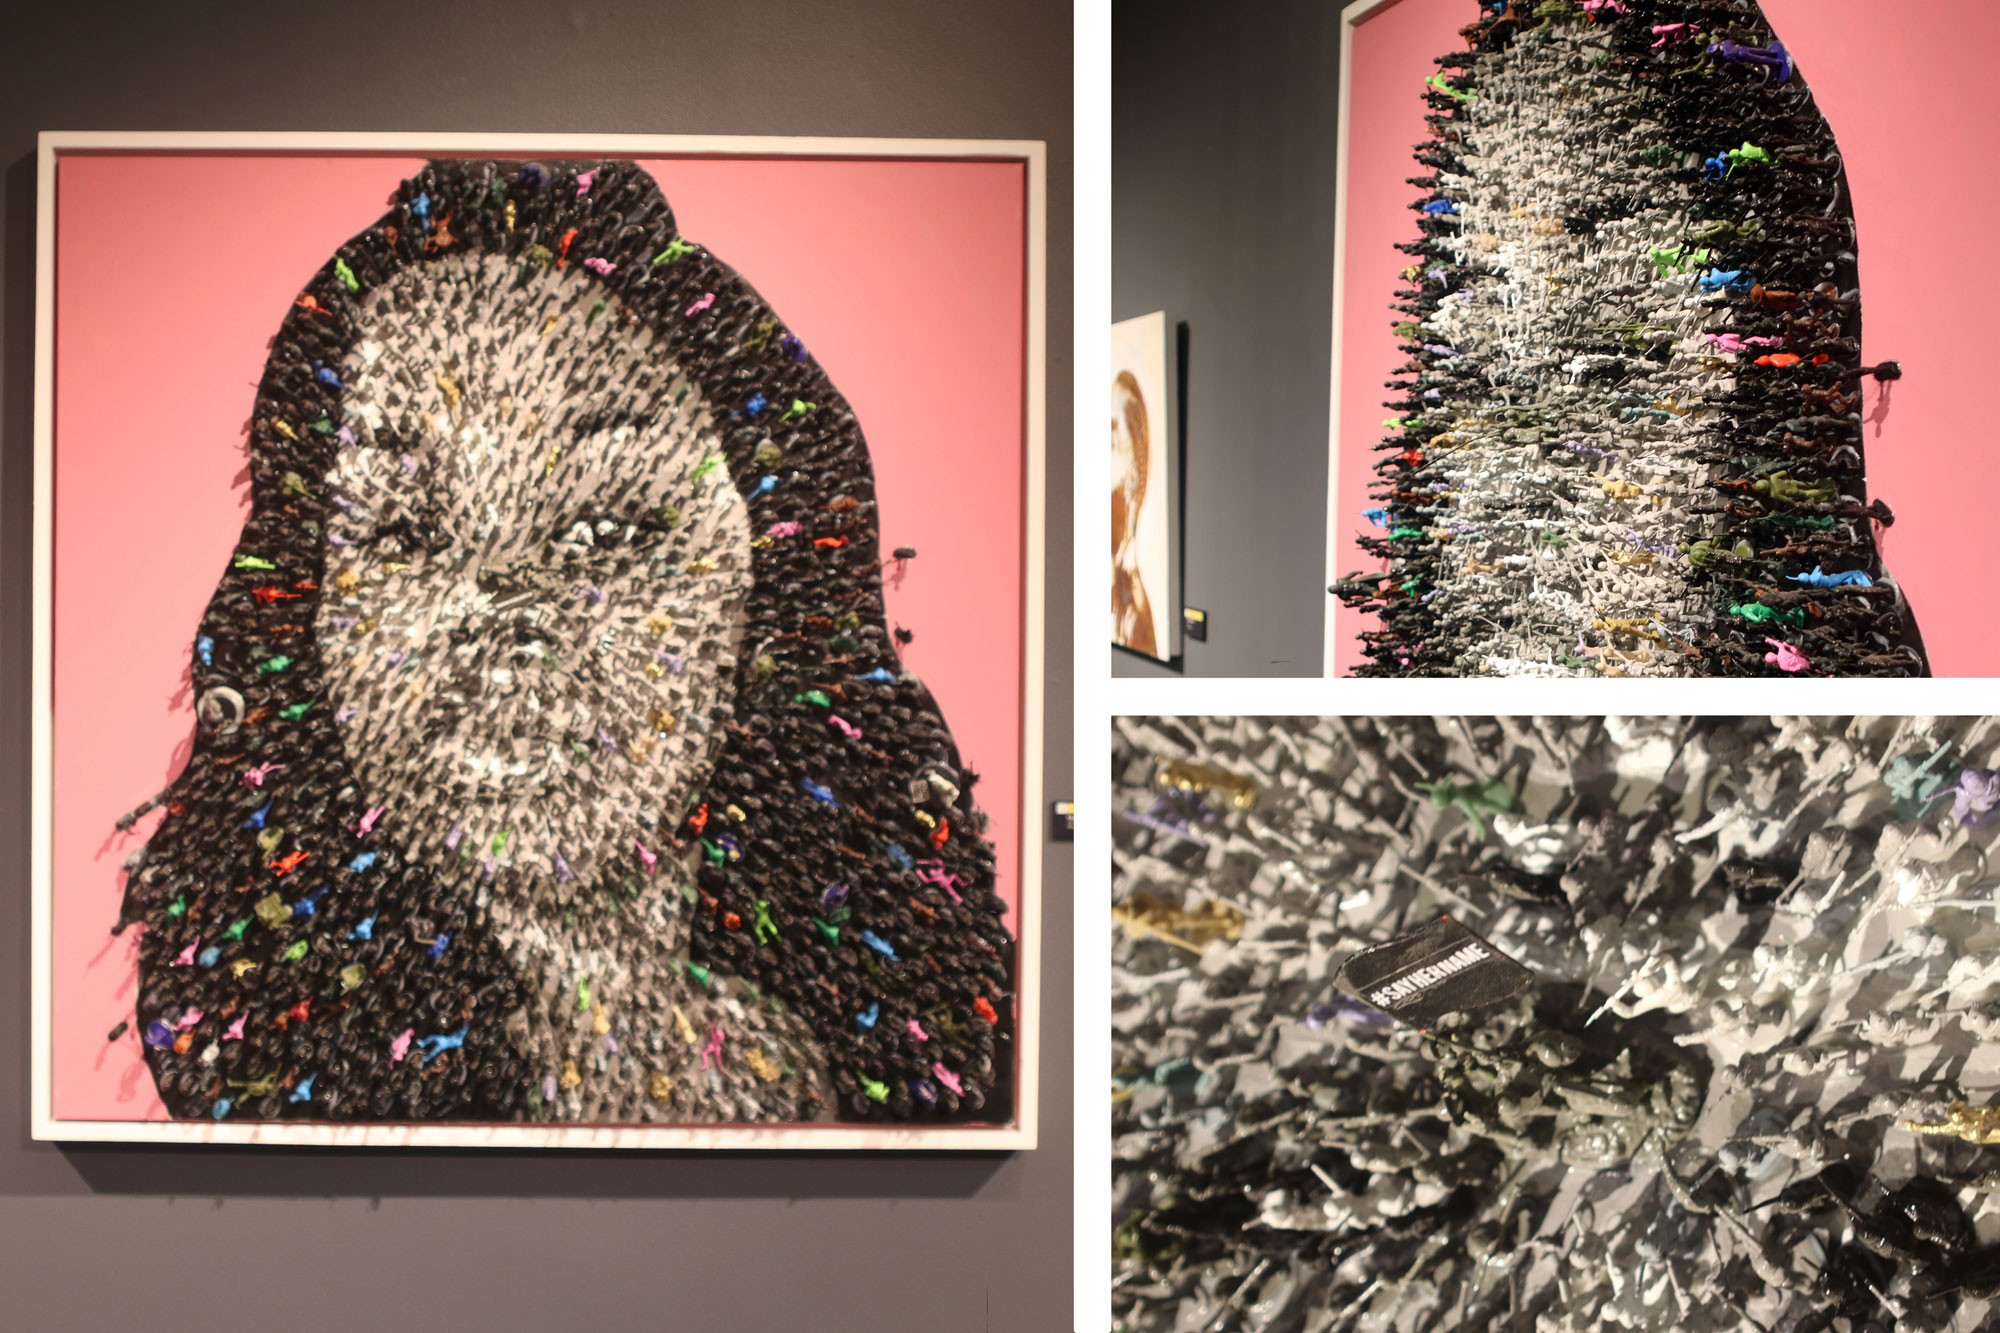 """<i>Say Her Name</i> by Roger Carter is a mixed media piece that utilizes toy army action figures to create a three-dimensional portrait of Breonna Taylor, who Kentucky police fatally shot in her apartment in 2020. Getting close to the piece, visitors can see that the toys are holding up a flag that says, """"#SAYHERNAME."""""""